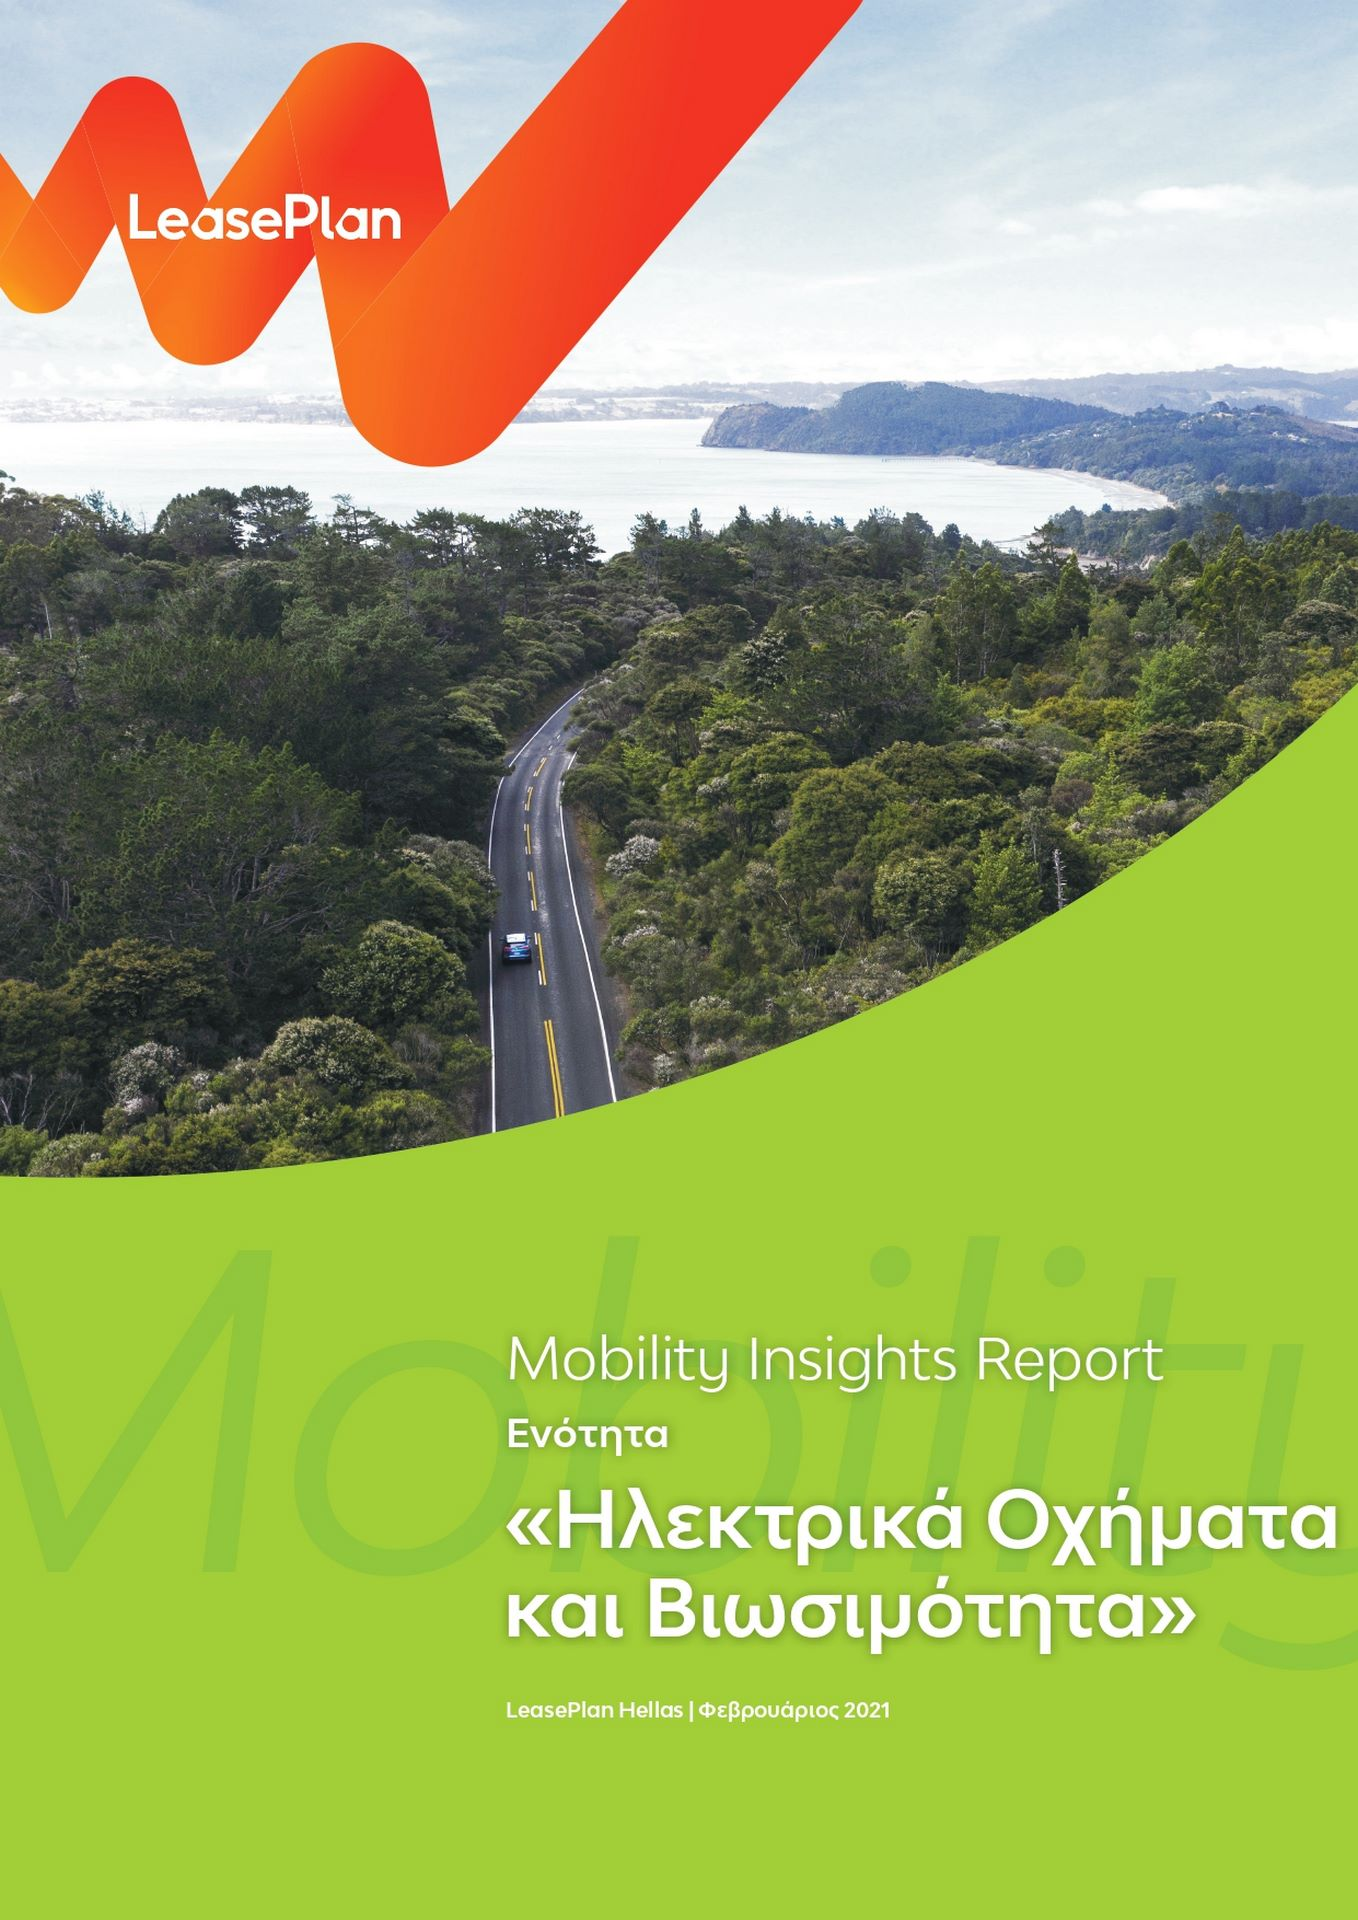 LeasePlan-Mobility-Insights-2021-1